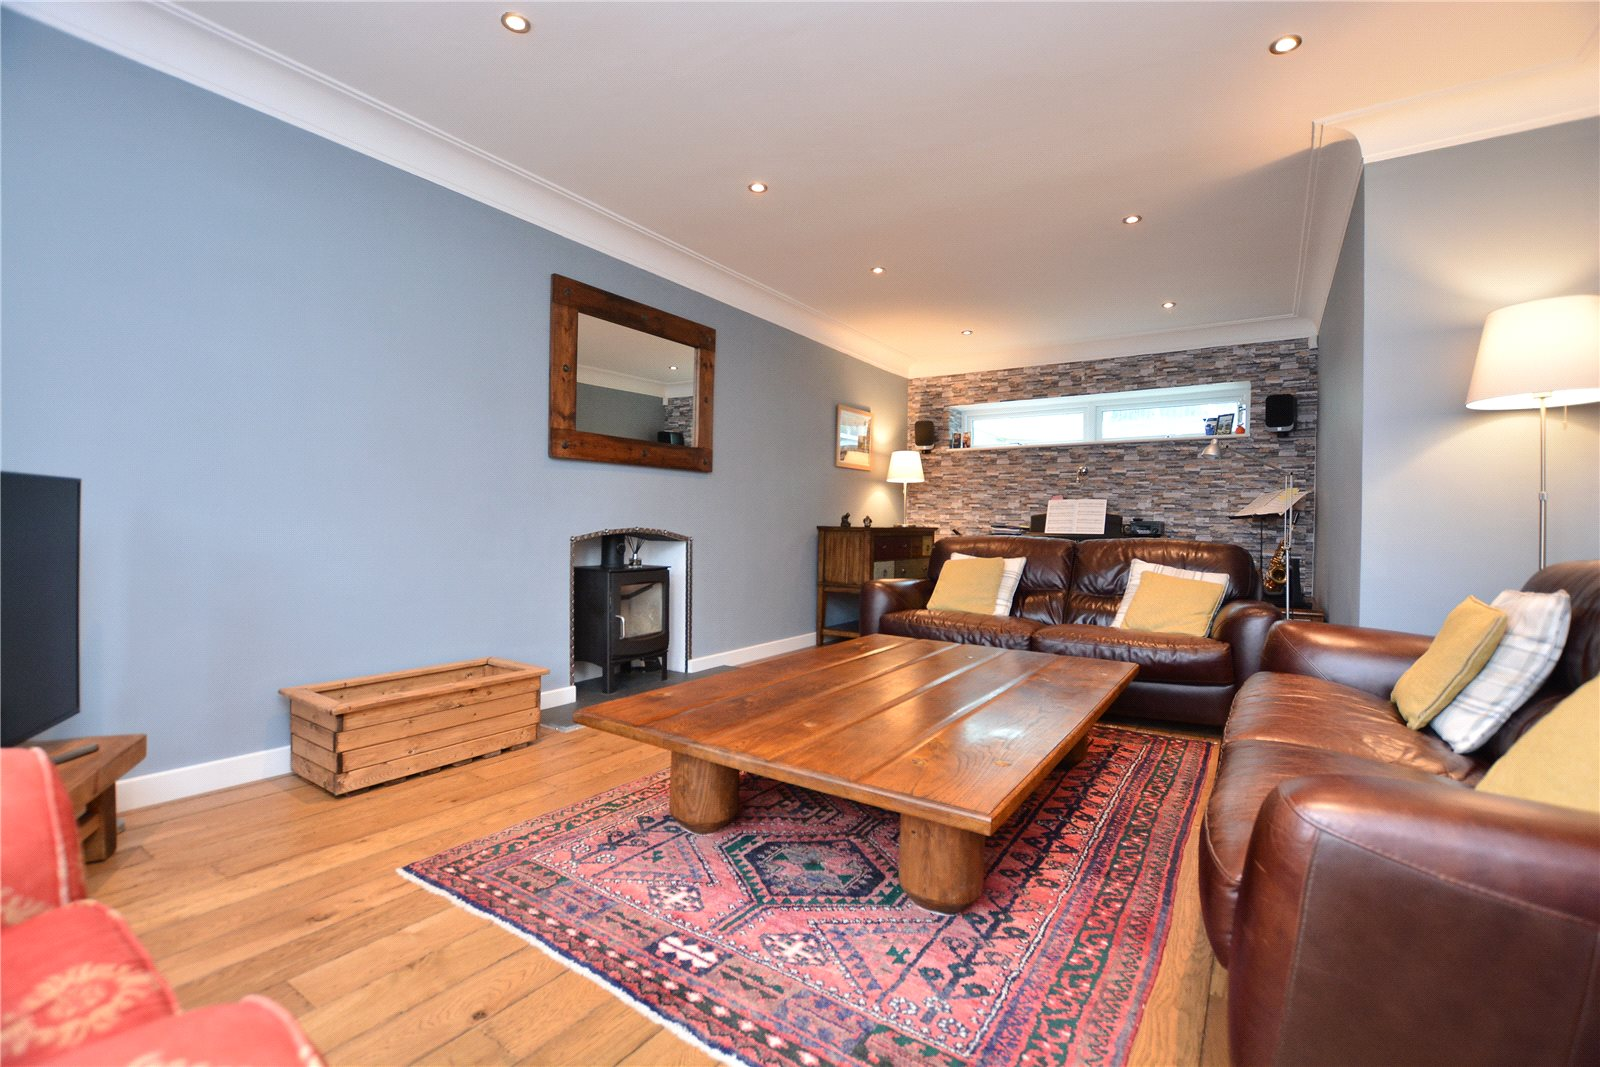 Property for sale in Oakwood, interior reception room, spacious with 2 leather sofas